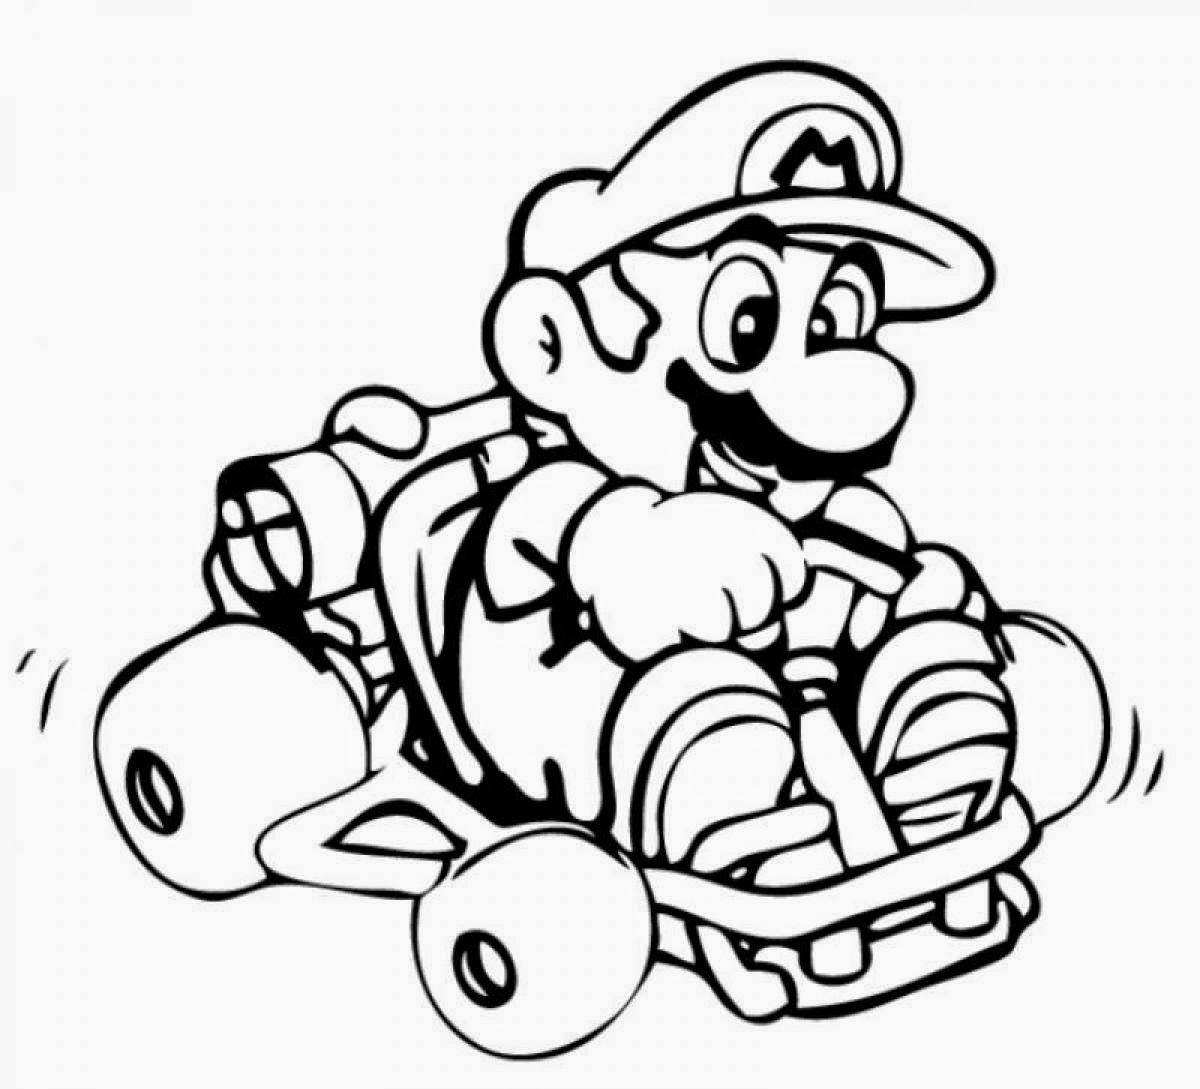 mario pictures to print super mario easter coloring pages coloring home to print pictures mario